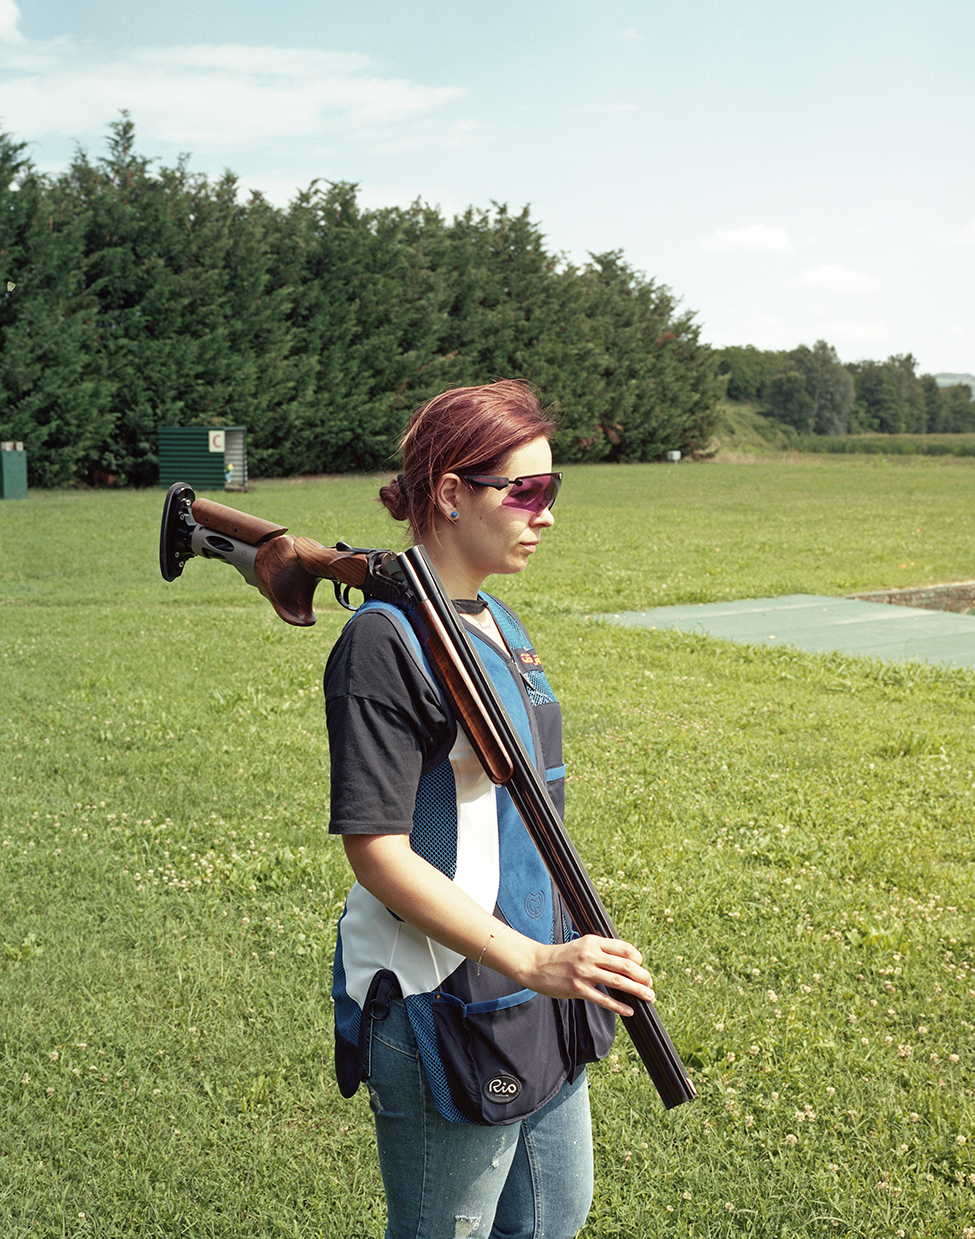 Montebello, Italy, 2018Laura a young woman from the small town of Montebello at the local shooting range